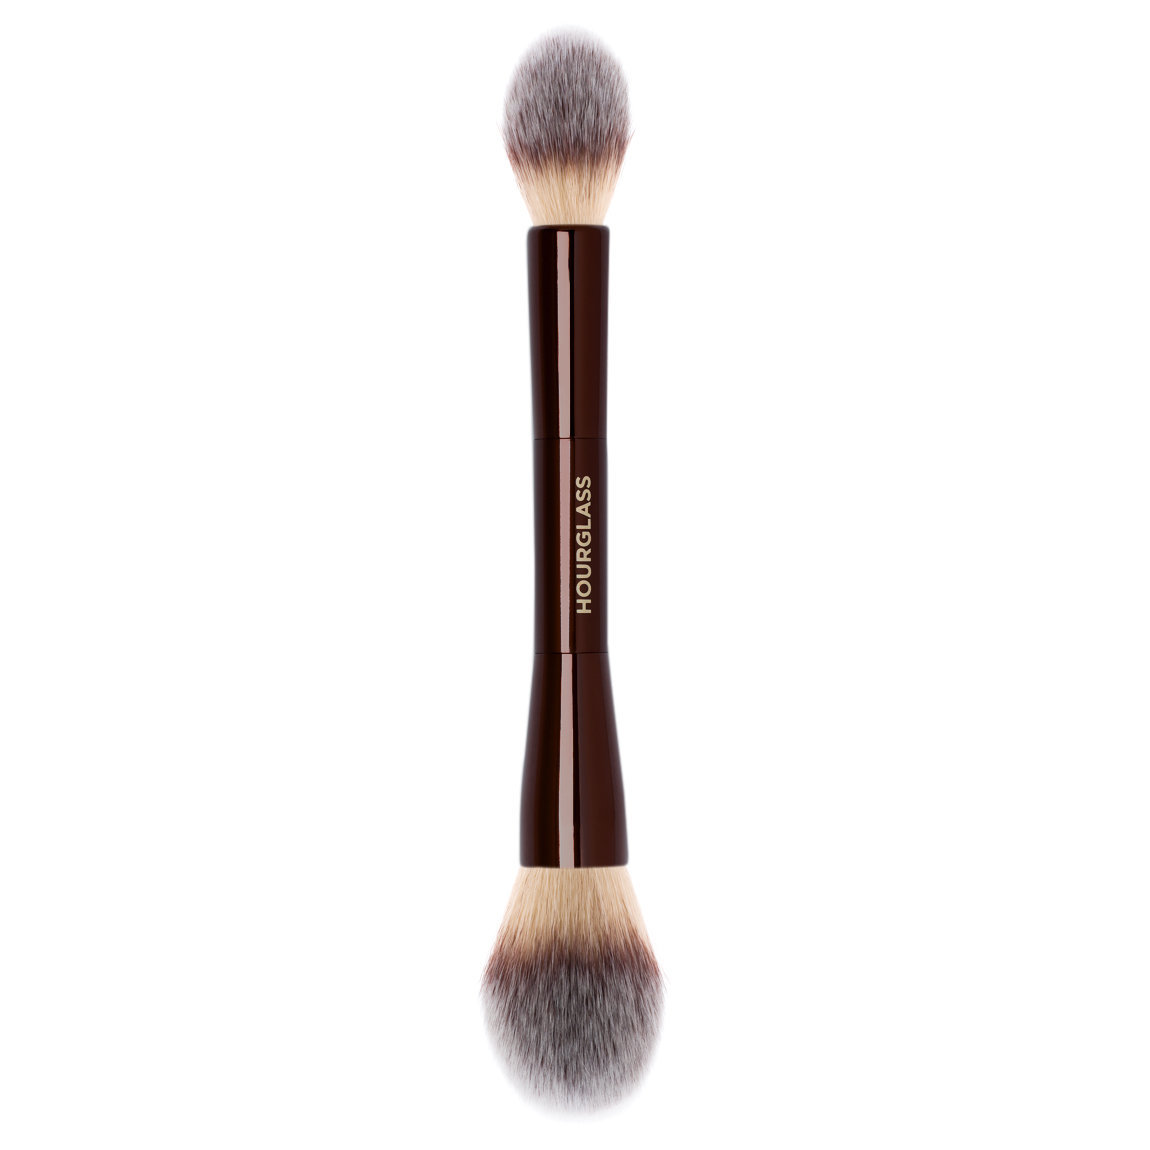 Hourglass Veil Translucent Setting Powder Brush product smear.